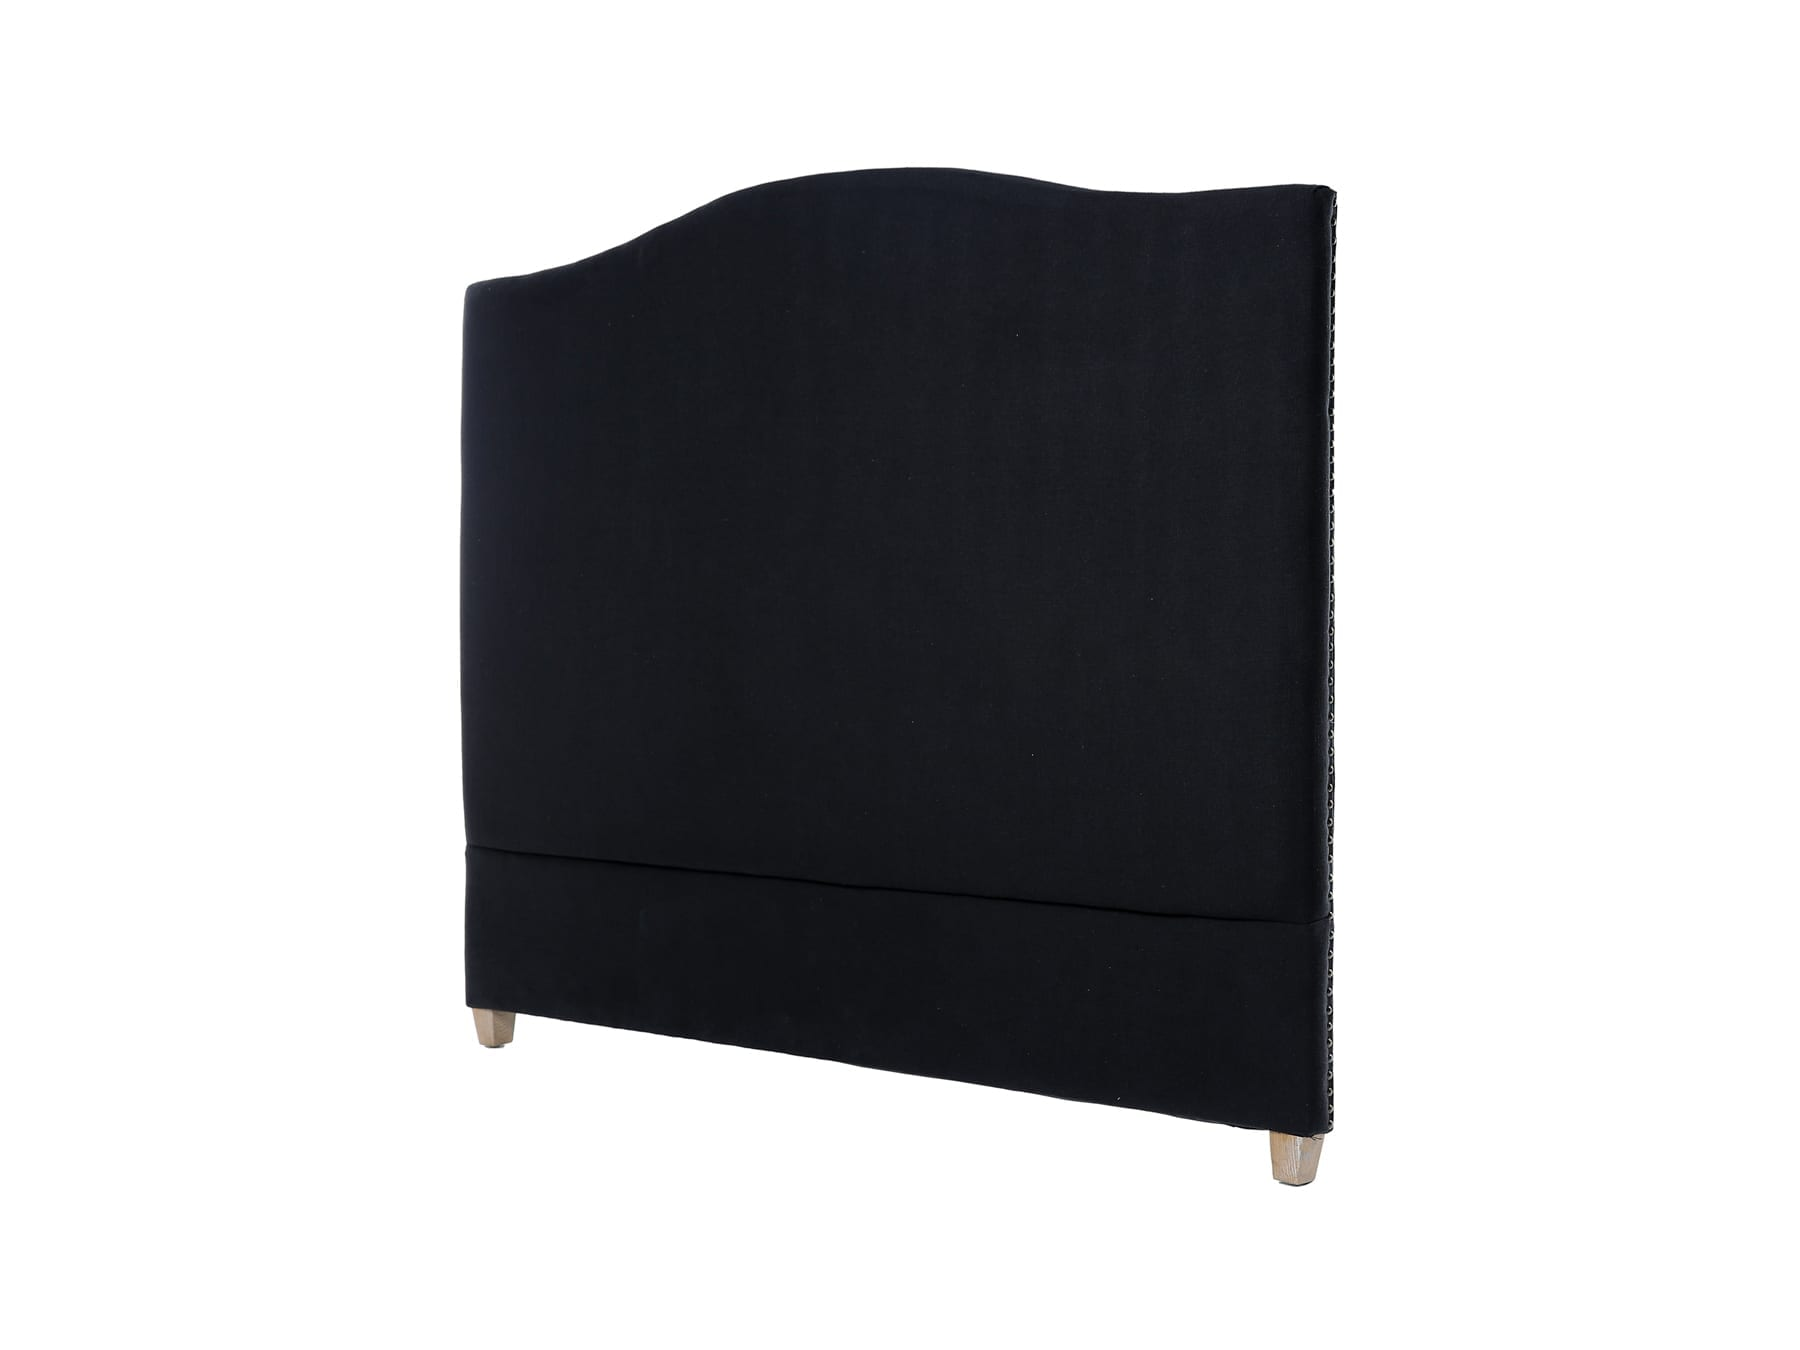 Linens & More Annabel Headboard in Black Linen available at McKenzie & Willis